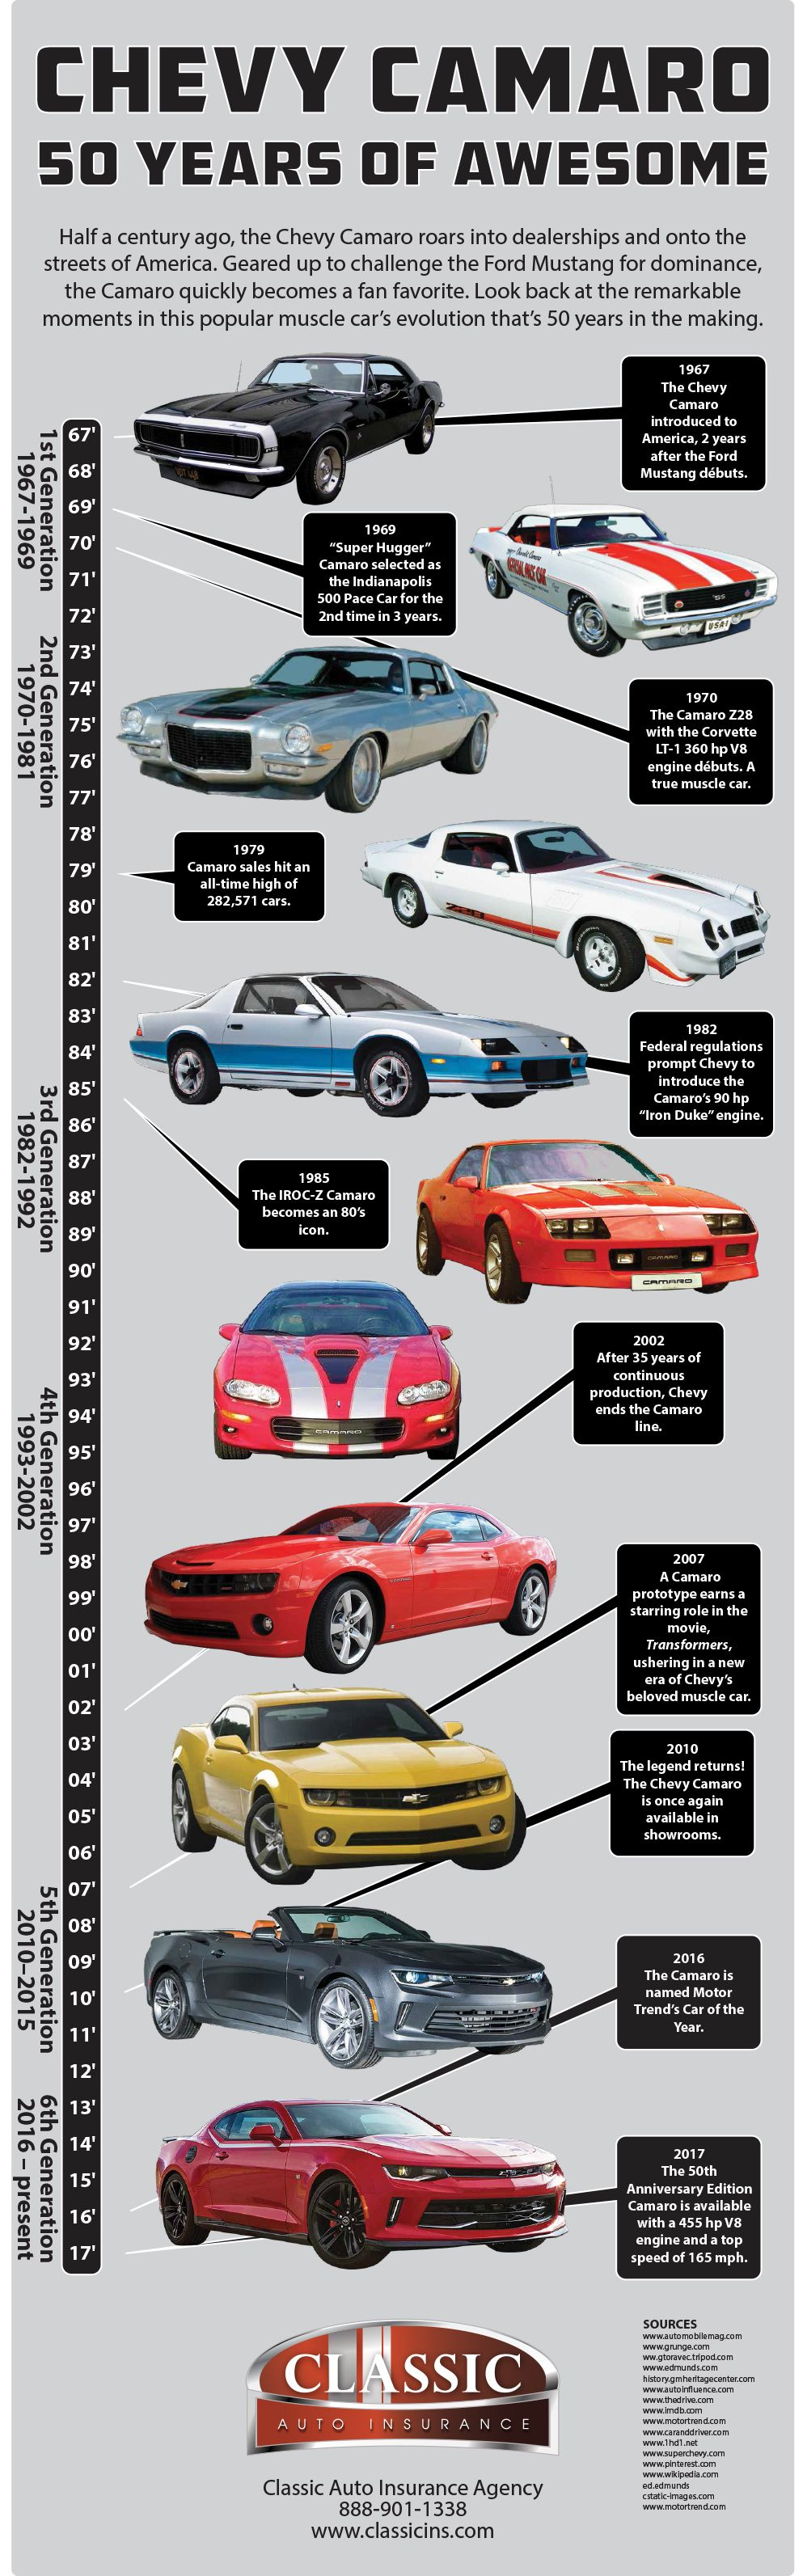 Chevy Camaro Classic American Muscle Car Turns 50